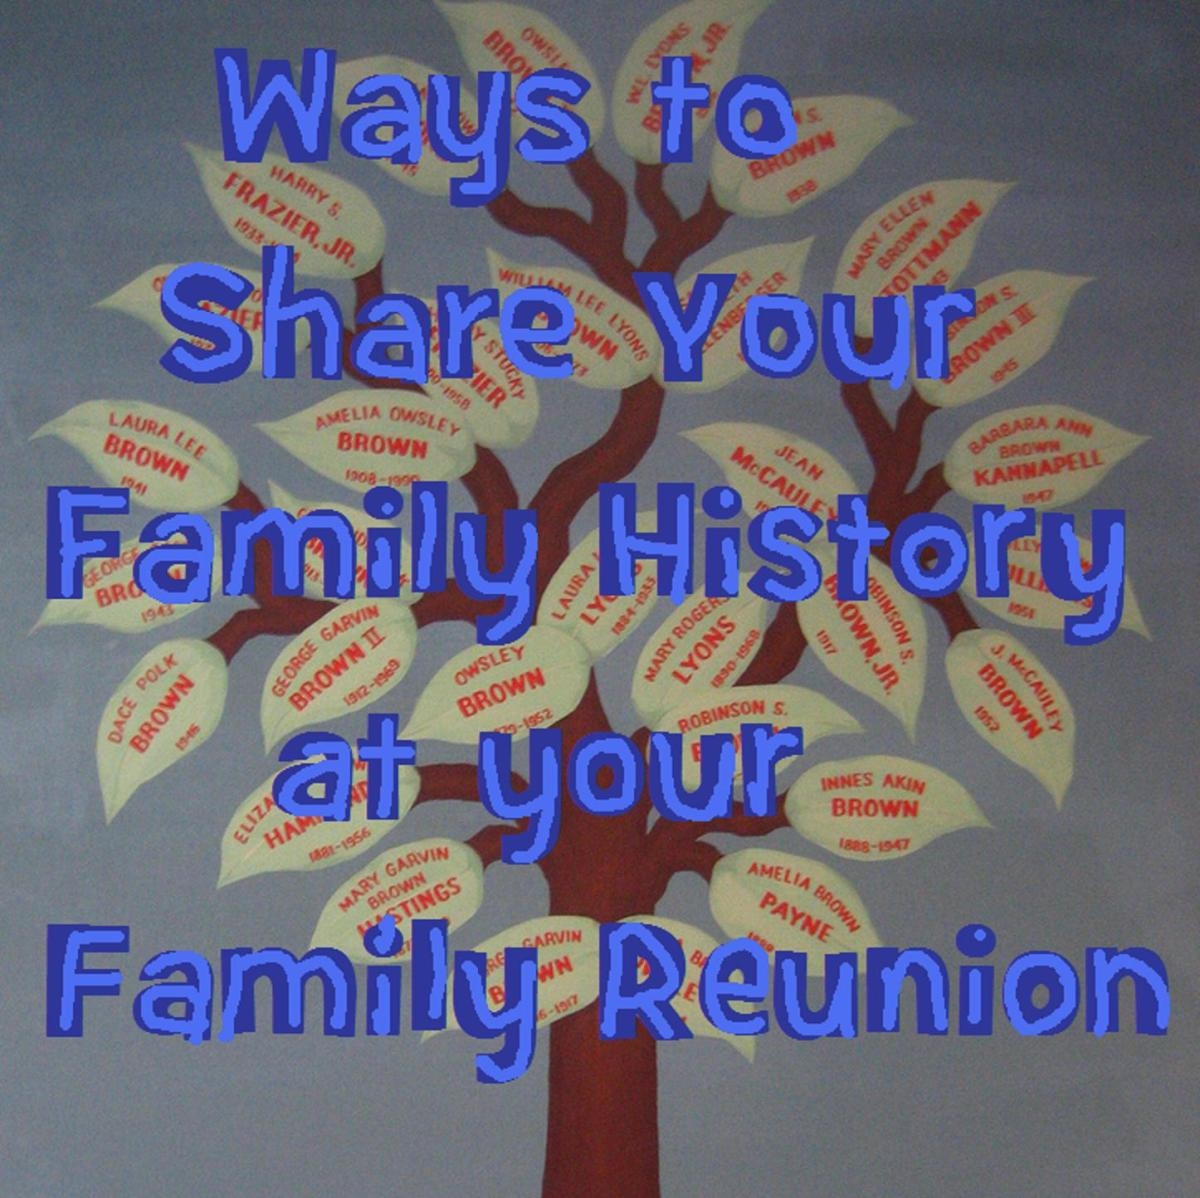 The 10 Best Family History Ideas for a Family Reunion